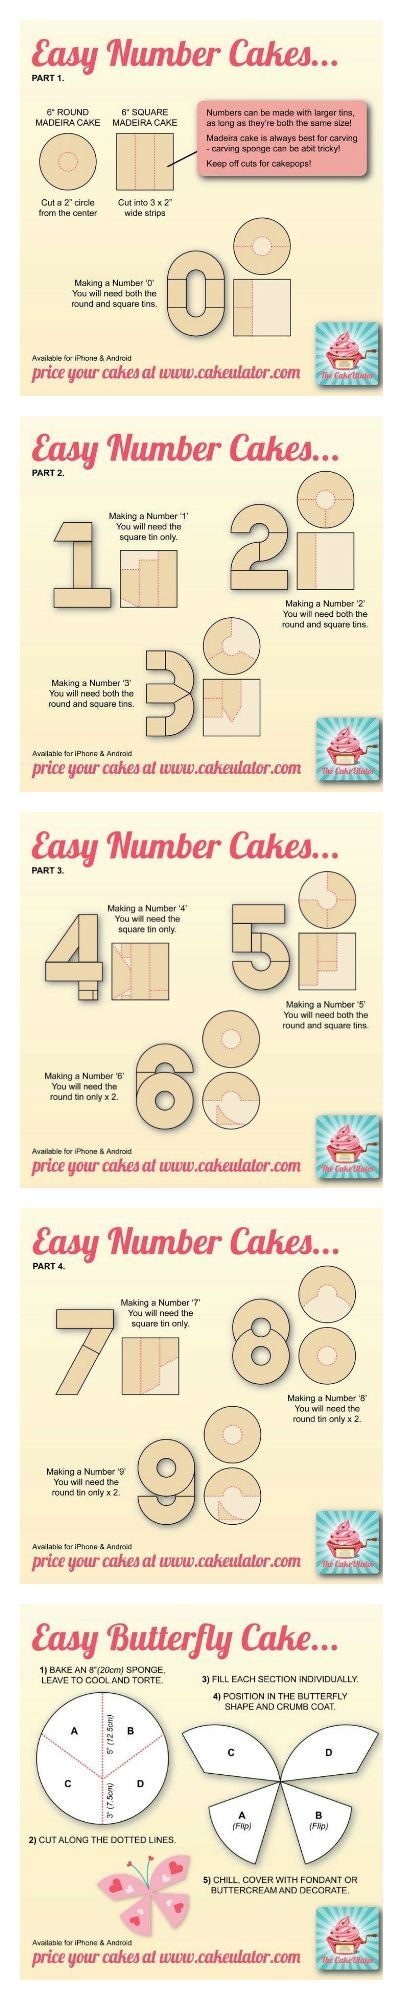 How to create easy number cakes, no special tins required!: